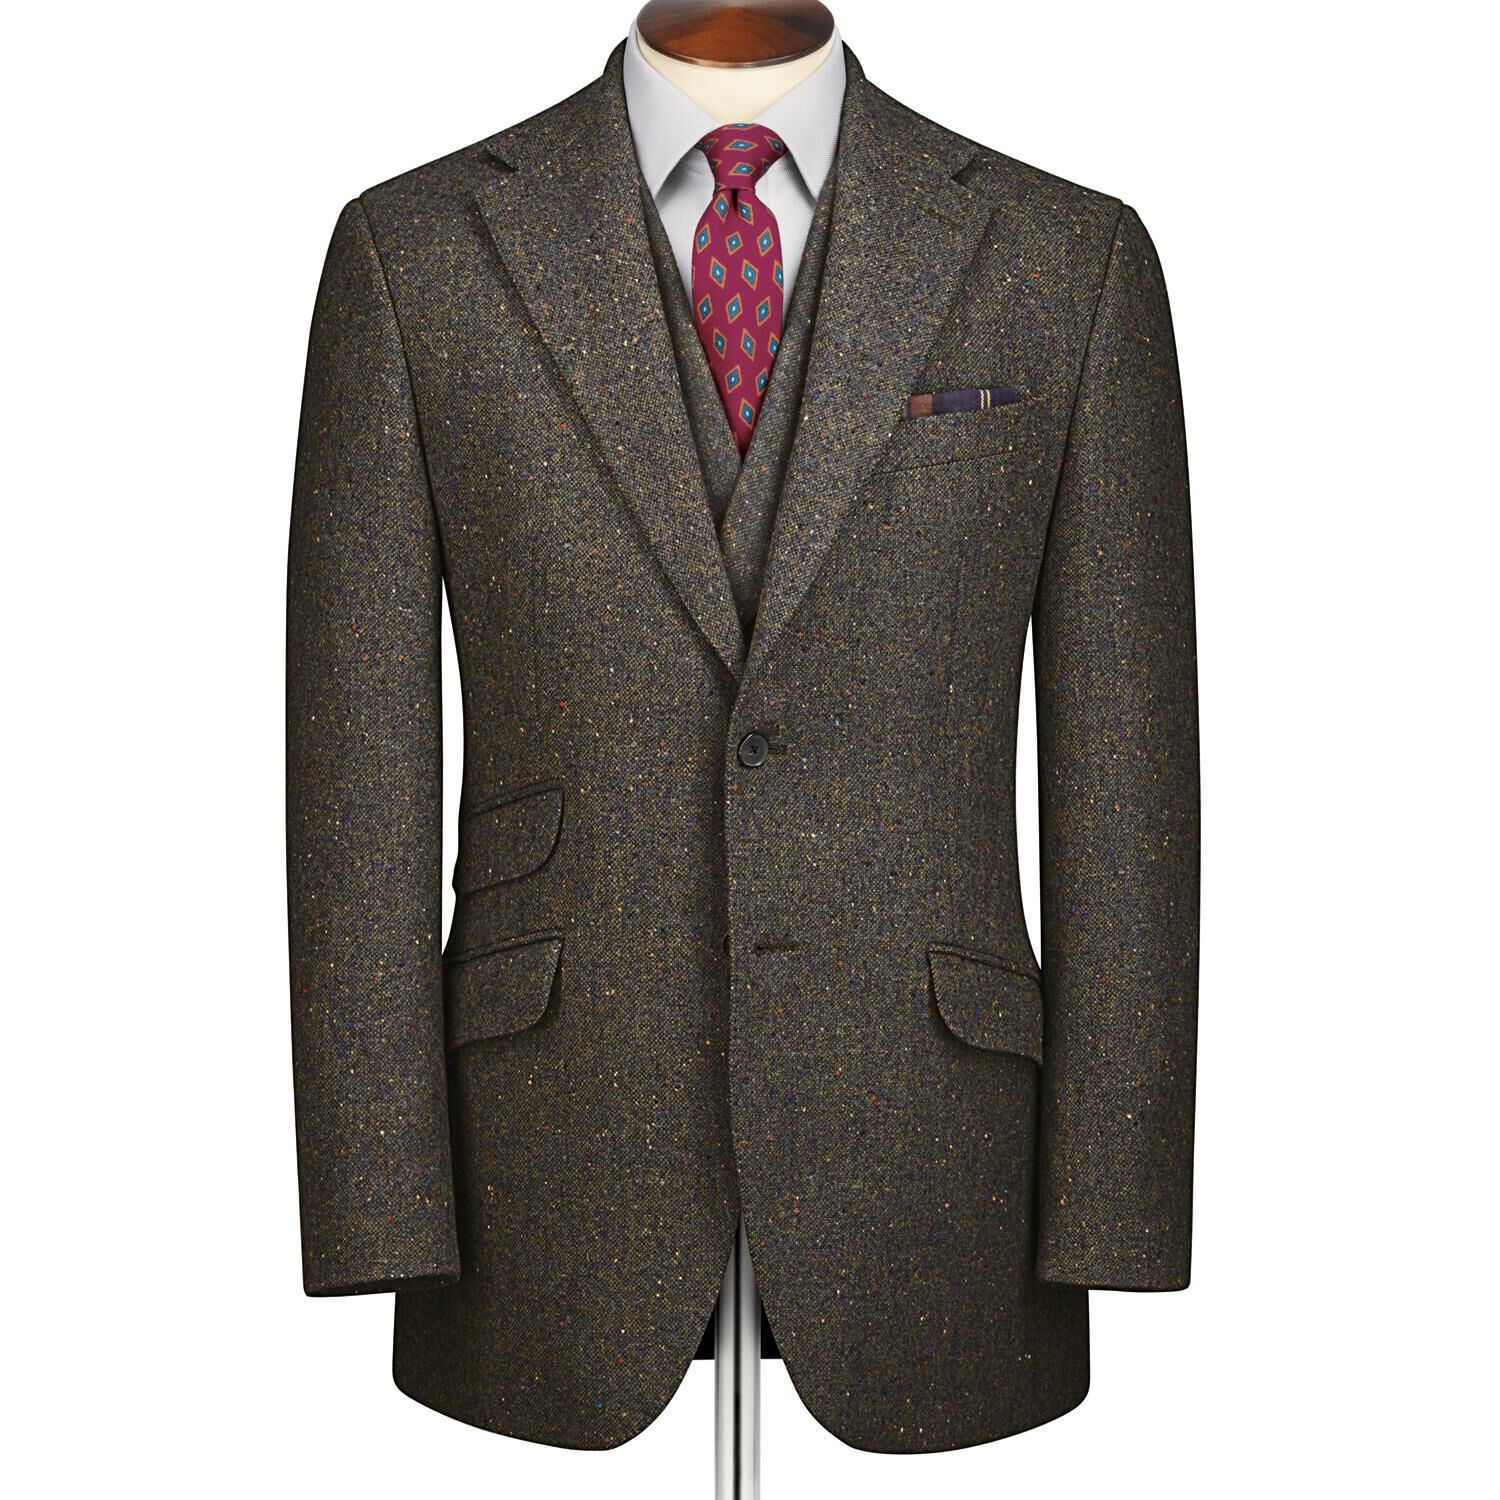 Green Slim Fit Donegal Tweed Wool Jacket Size 40 Short by Charles Tyrwhitt